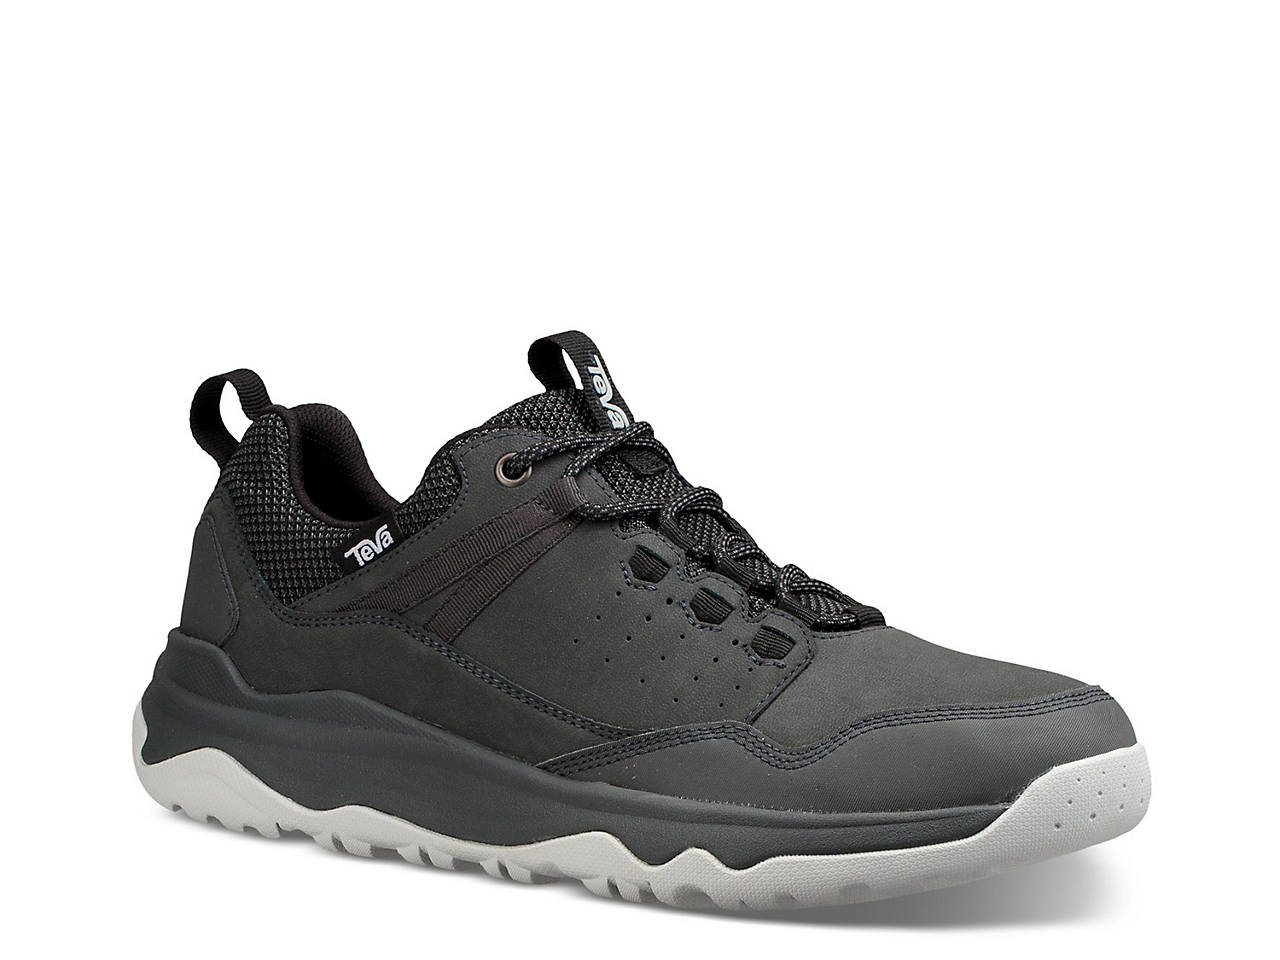 0dff9ab0728ec6 Teva Ridge Peak Sneaker Men s Shoes